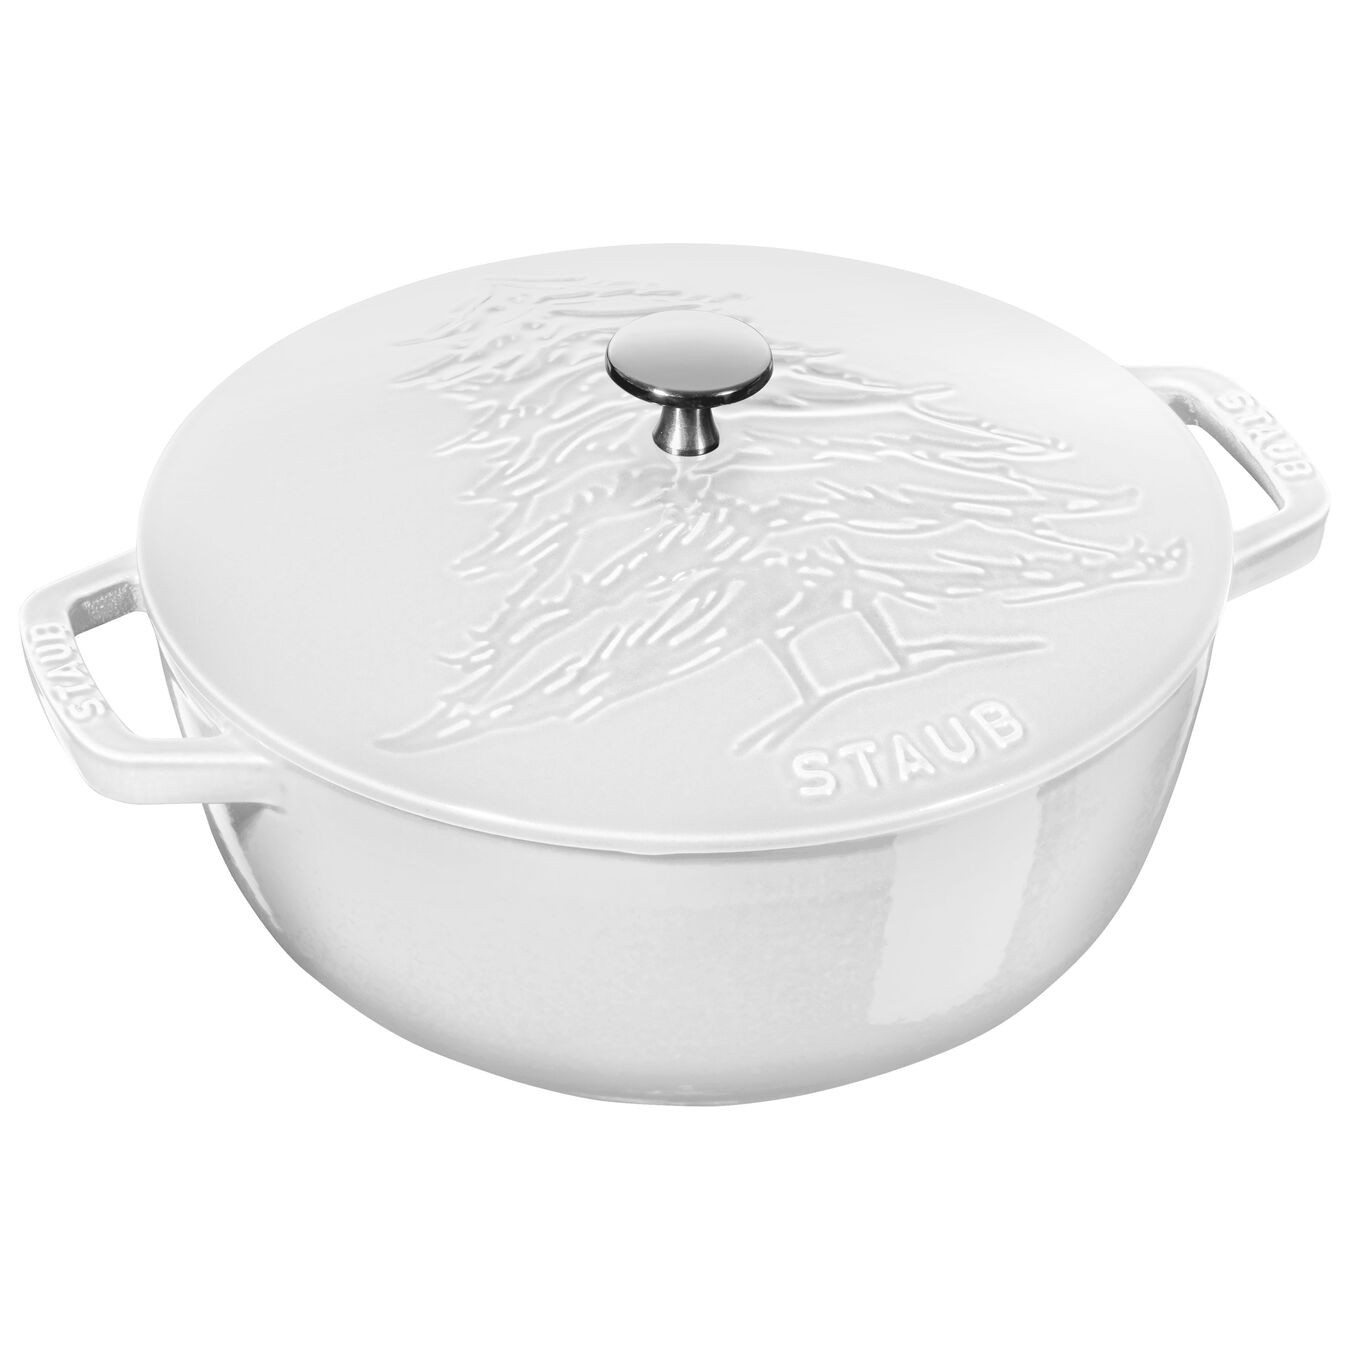 3.75-qt Essential French Oven w/Pine Tree Lid - Visual Imperfections - White,,large 1